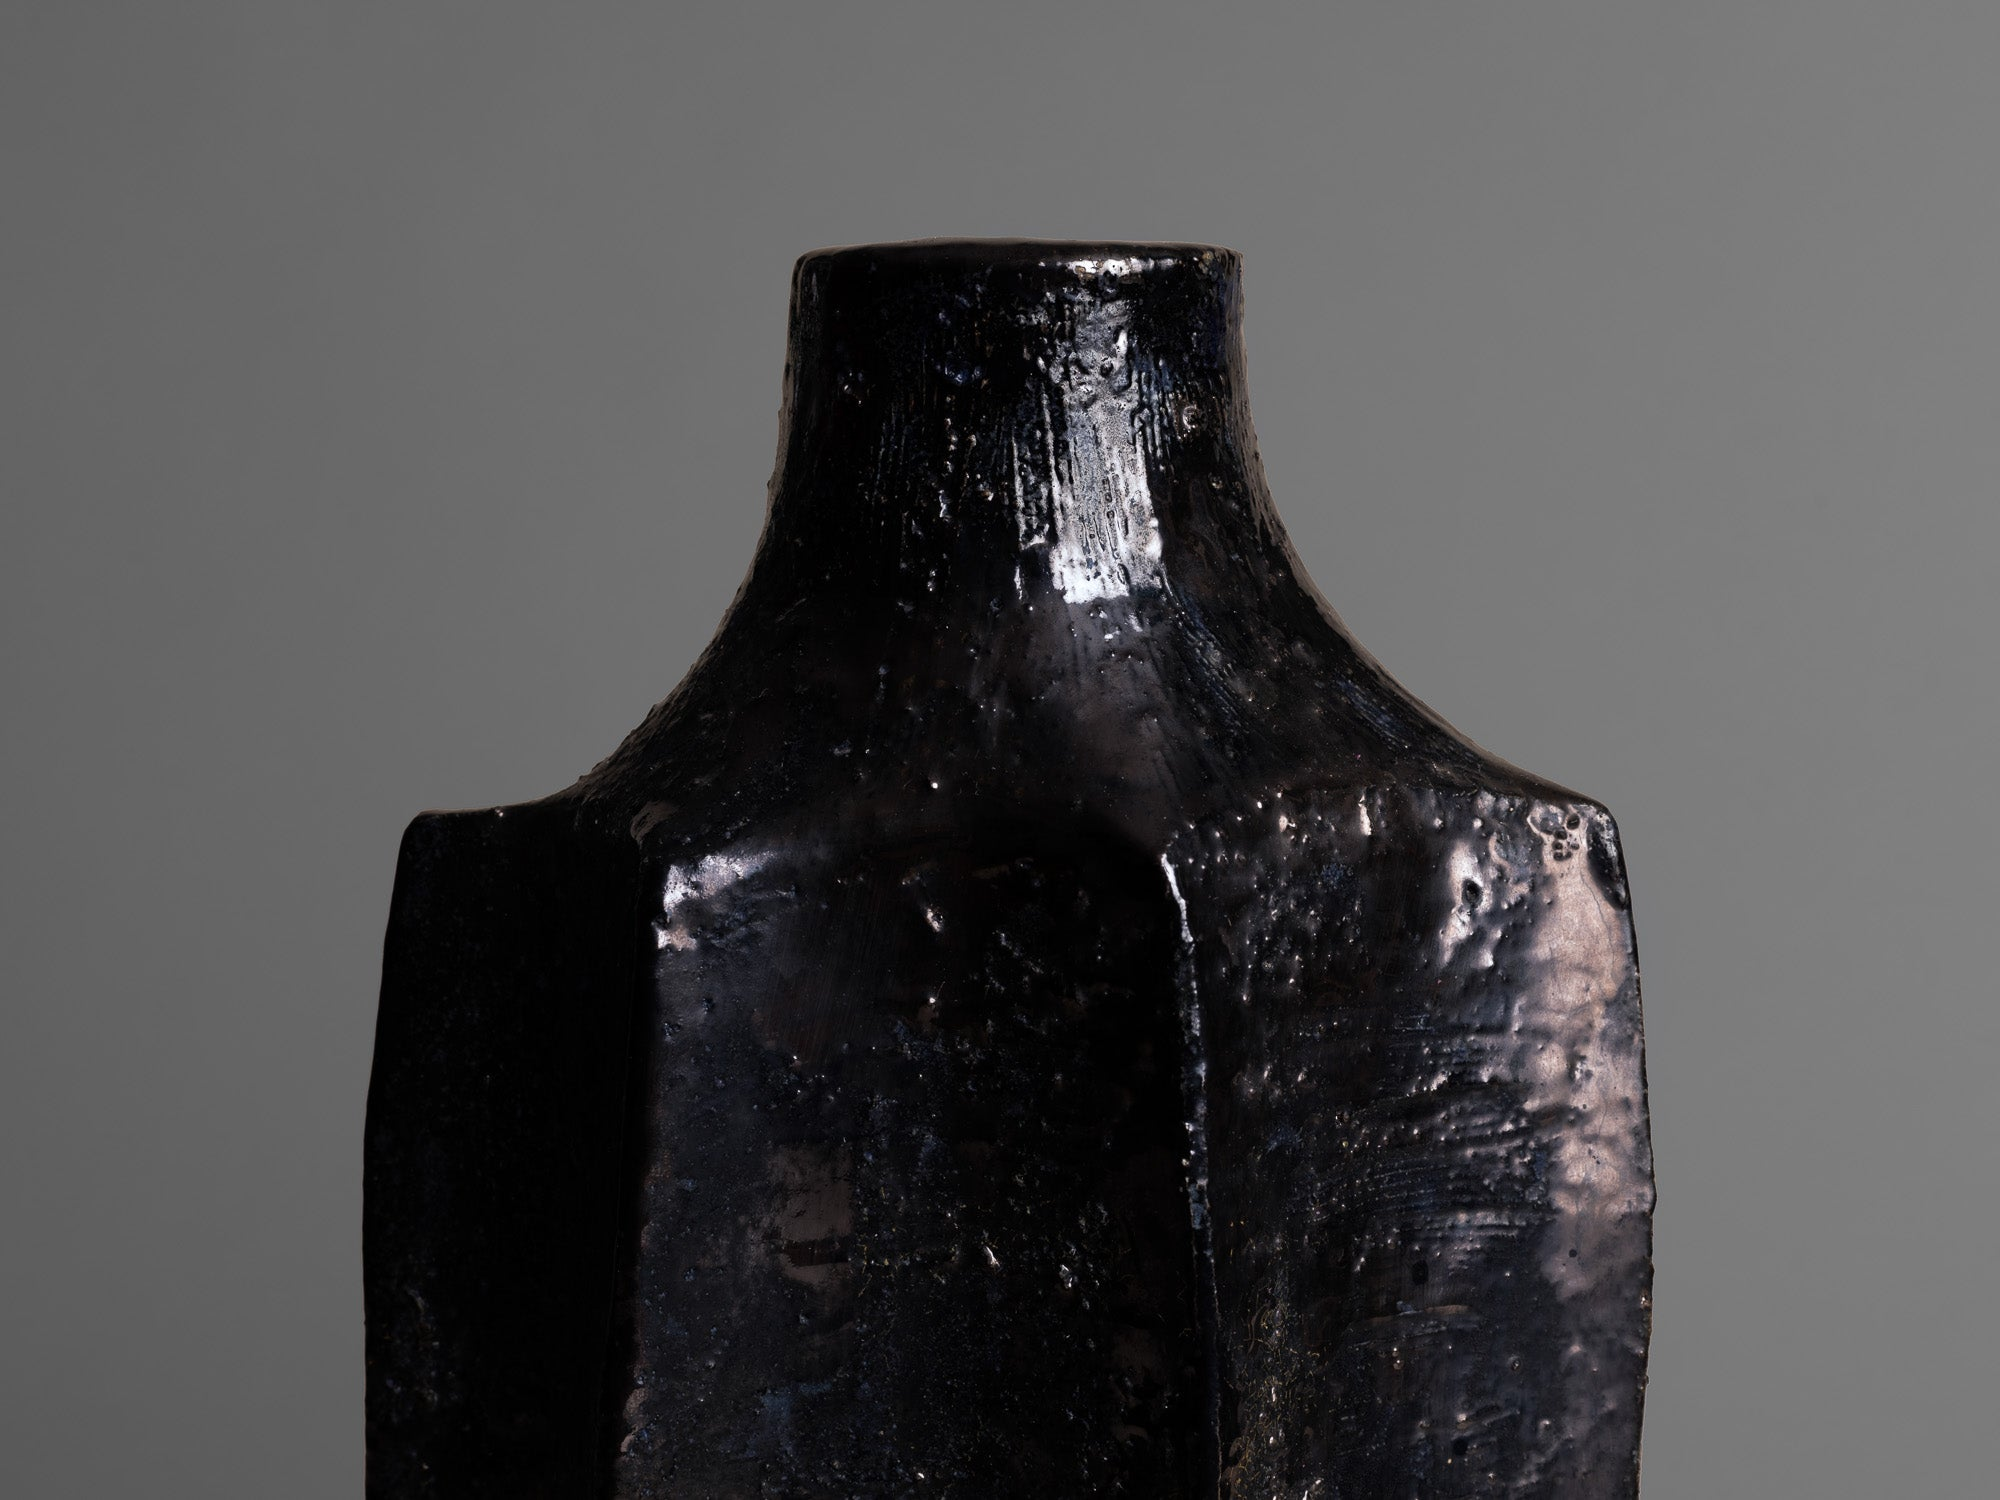 Rare vase de forme libre de Raymond Louis Quillivic, France (vers 1970) - Collection Serullaz..Huge freeform vase by Raymond Louis Quillivic, France (circa 1970) - Collection Serullaz